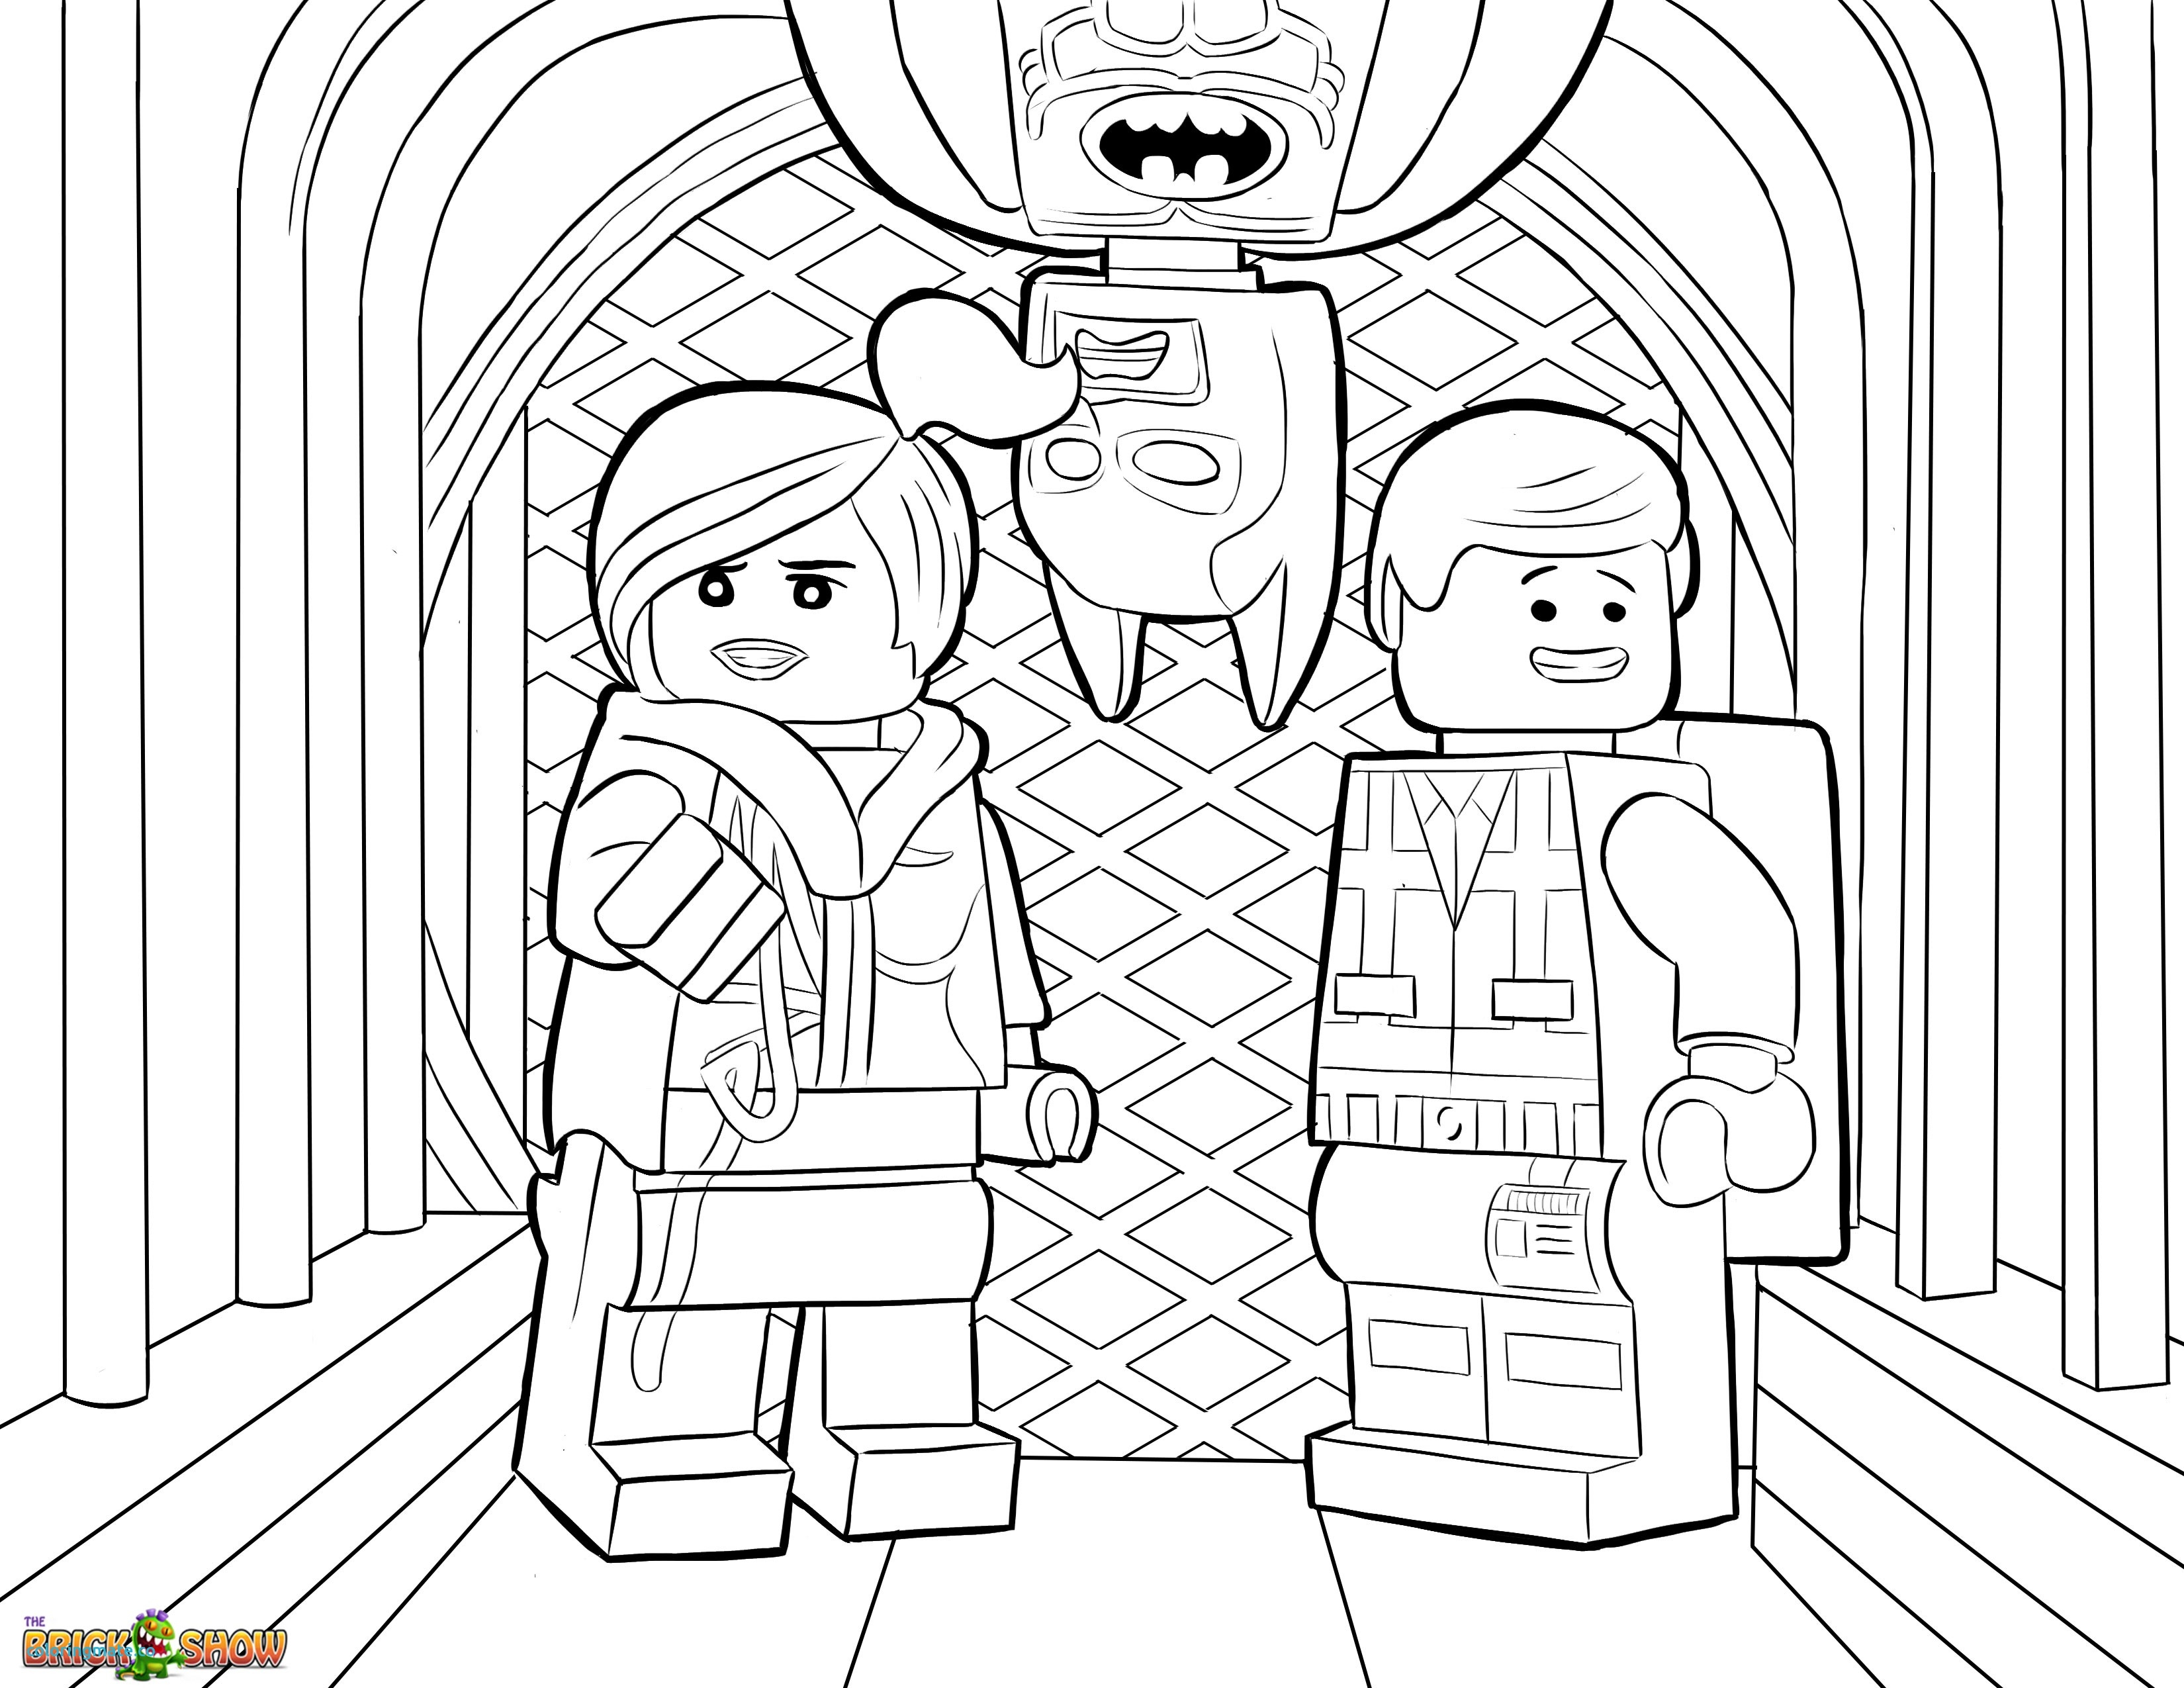 lego free printable coloring pages lego batman coloring pages best coloring pages for kids printable pages free coloring lego